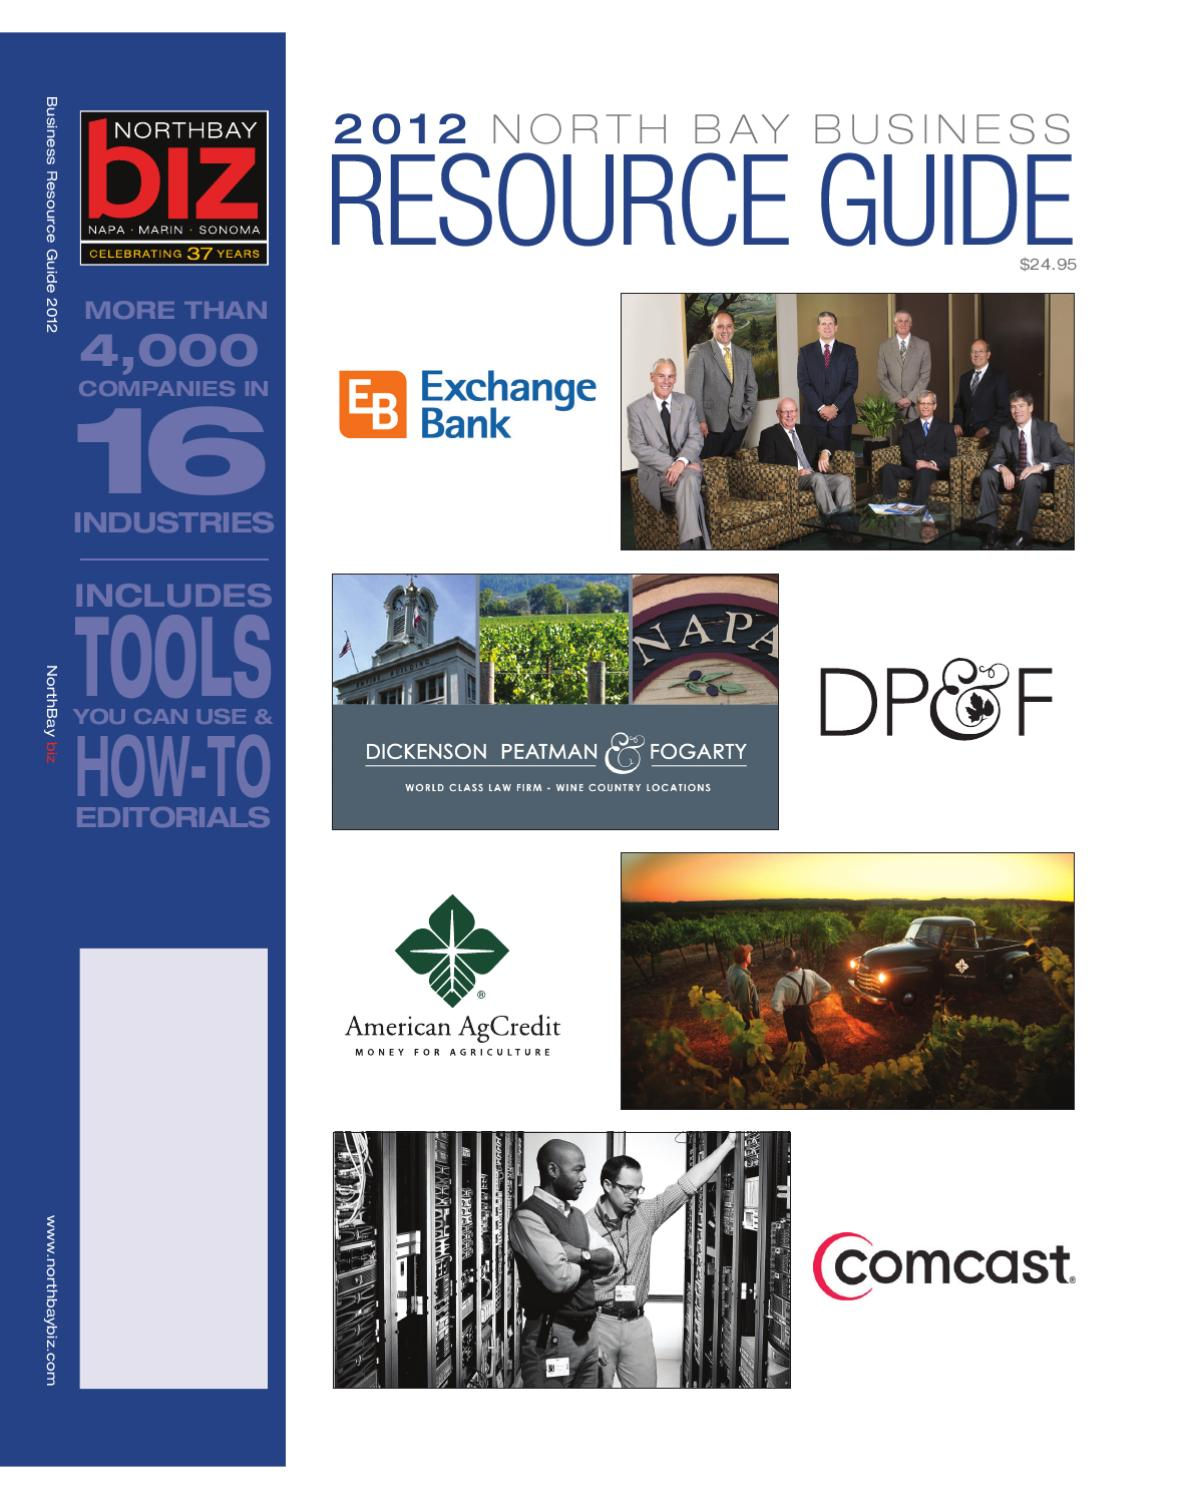 North bay business resource guide 2012 by northbay biz issuu fandeluxe Gallery